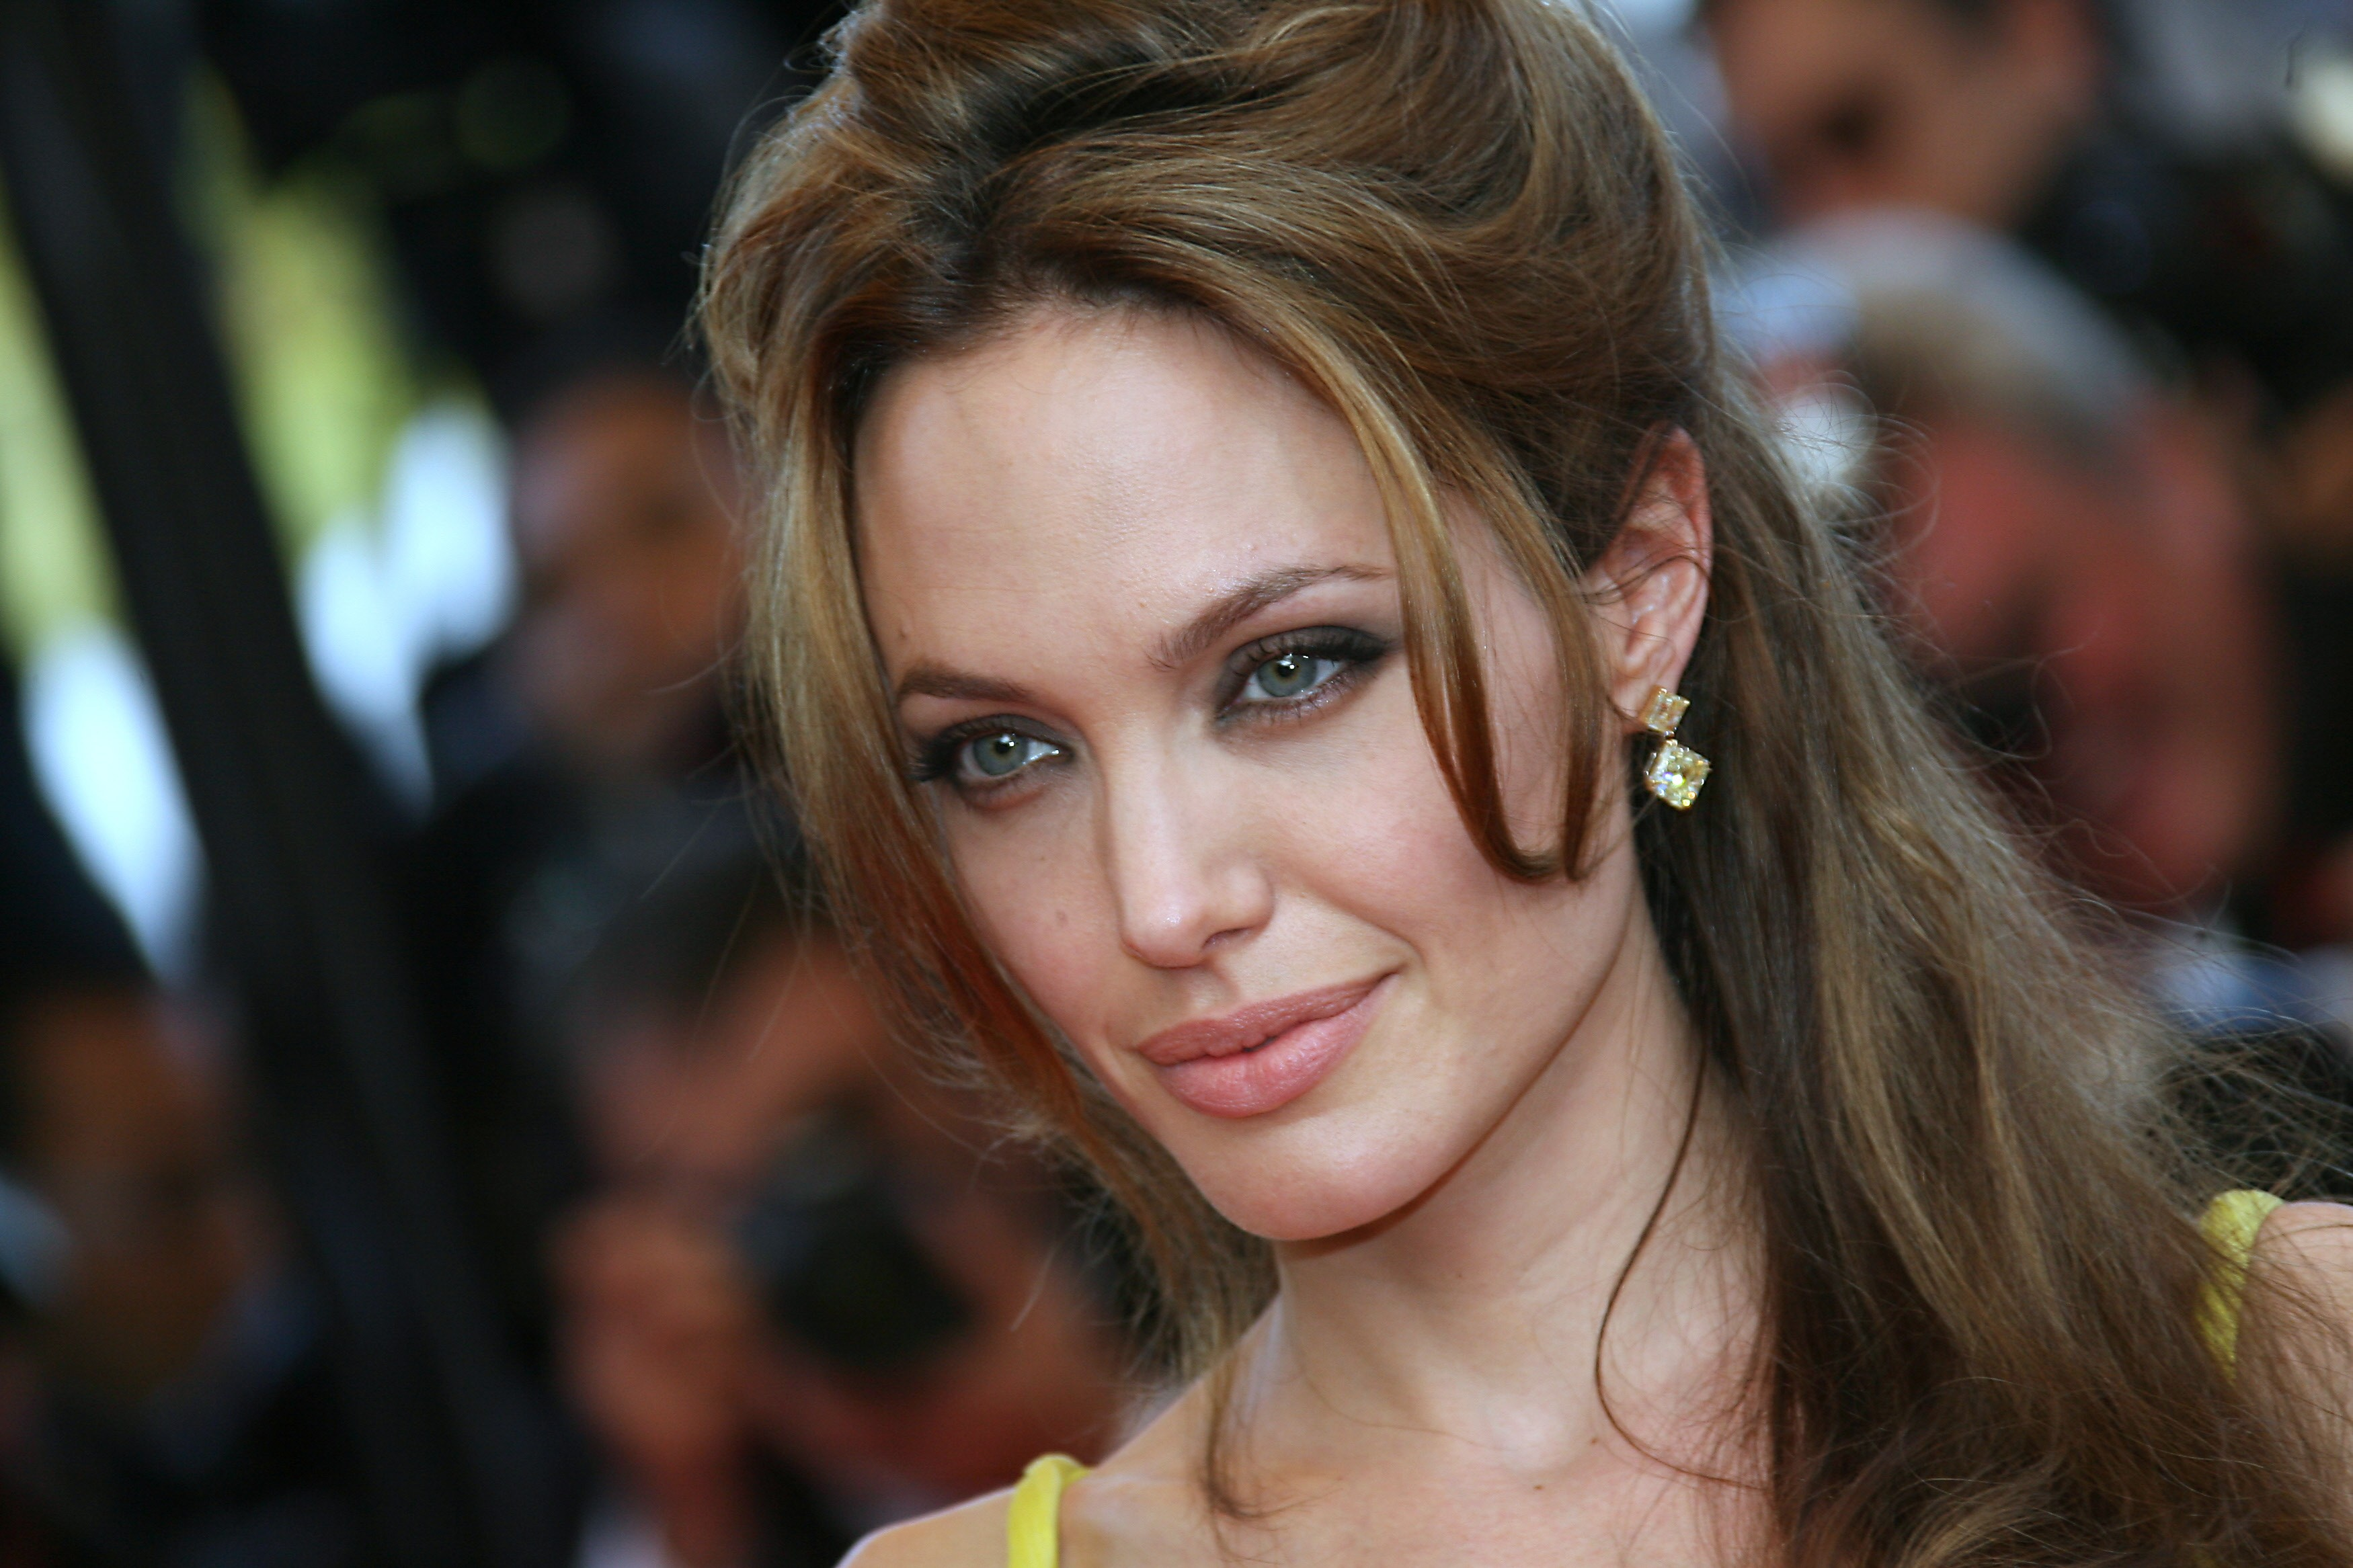 angelina jolie full hd wallpaper and background image | 3500x2333